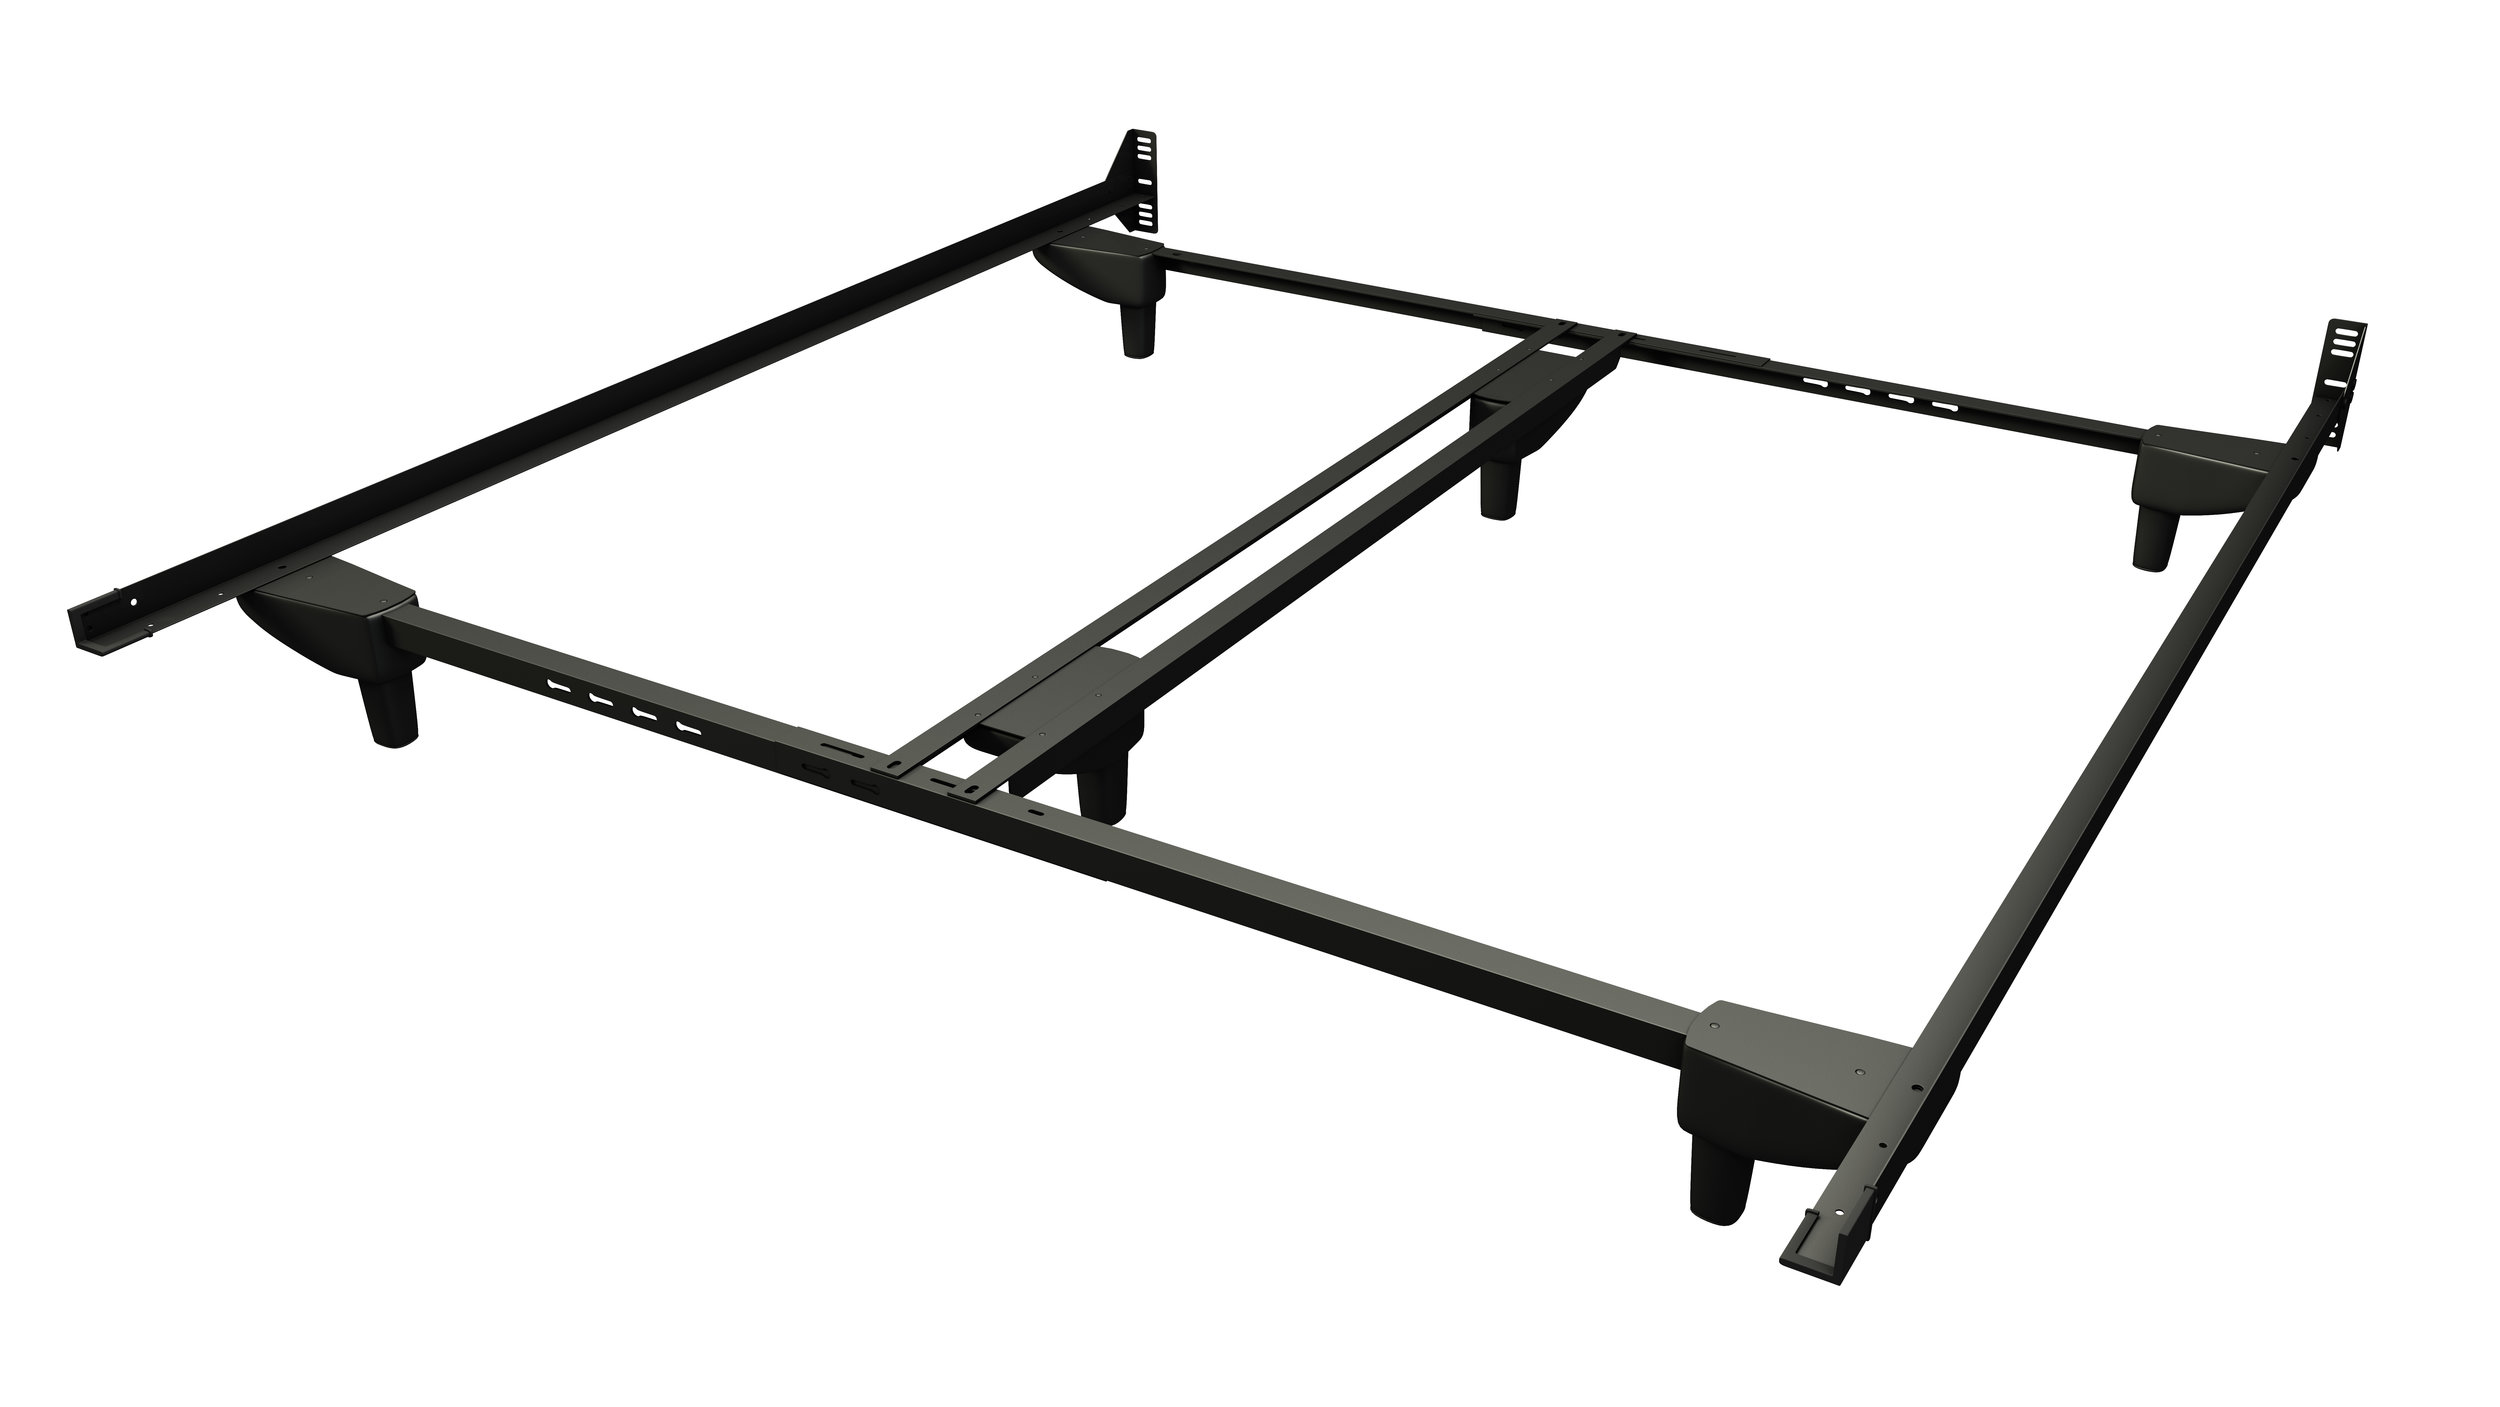 The Balance bed frame